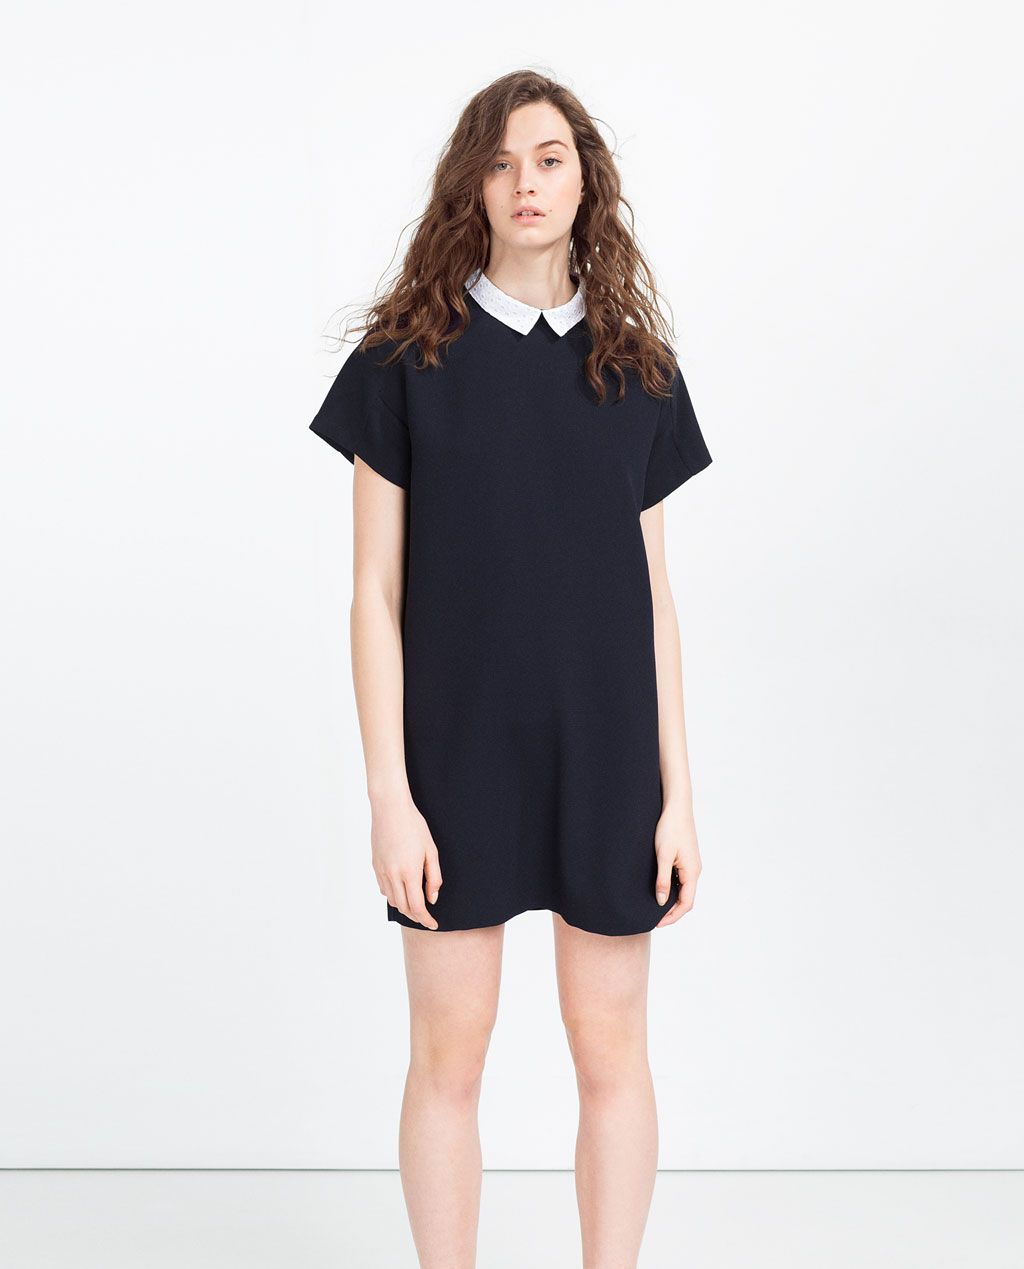 Black t shirt dress zara - Image 1 Of Straight Cut Dress With Collar From Zara